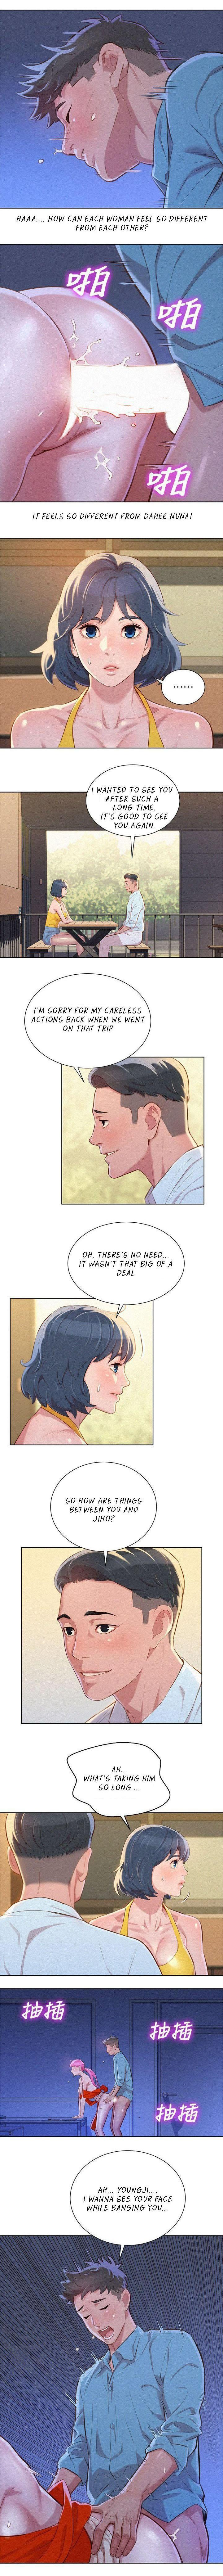 What do you Take me For? Ch.50/? 398